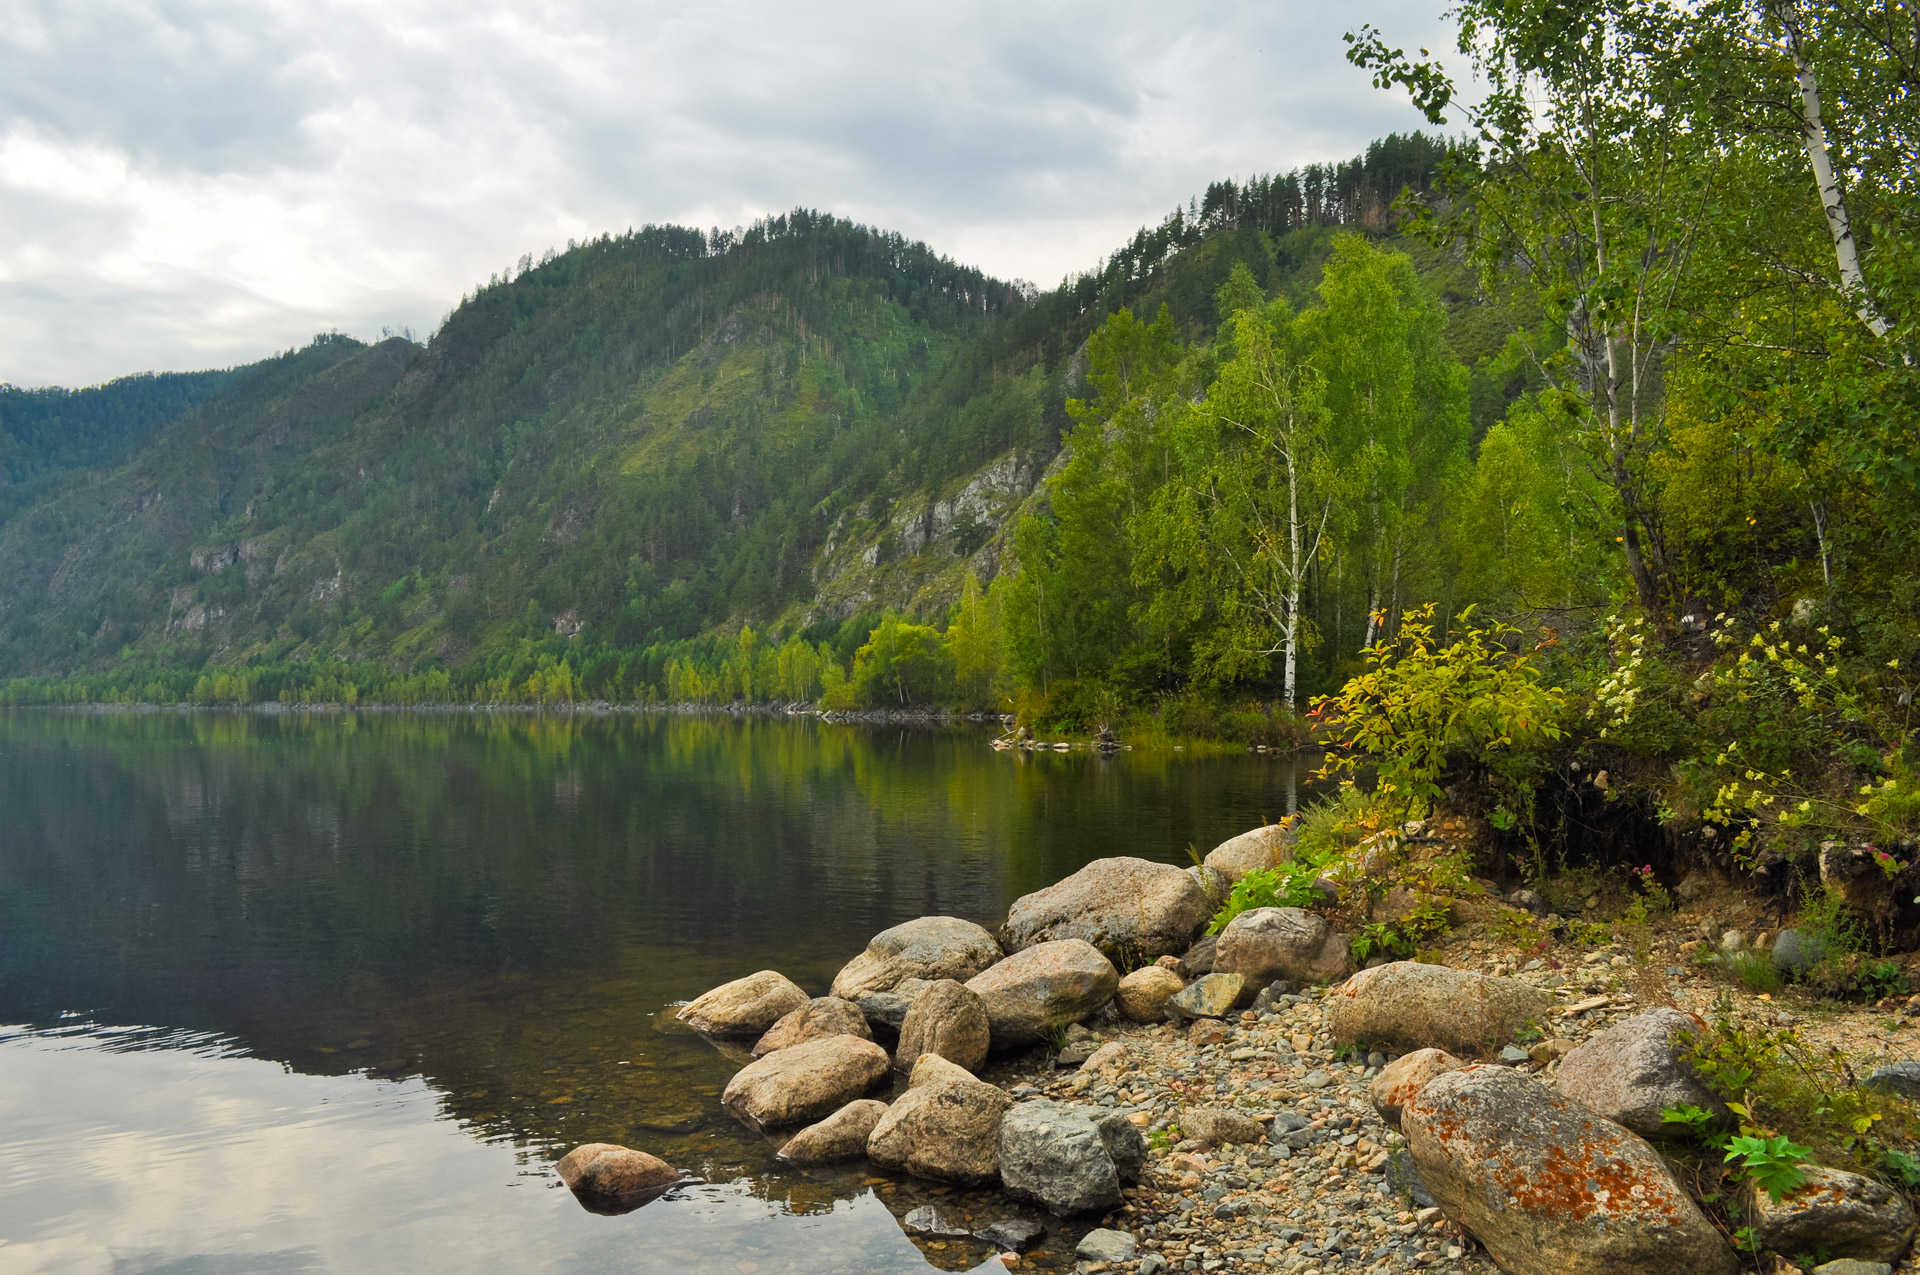 A Picturesque Place Near The River Free Stock Photo - Public Domain ...